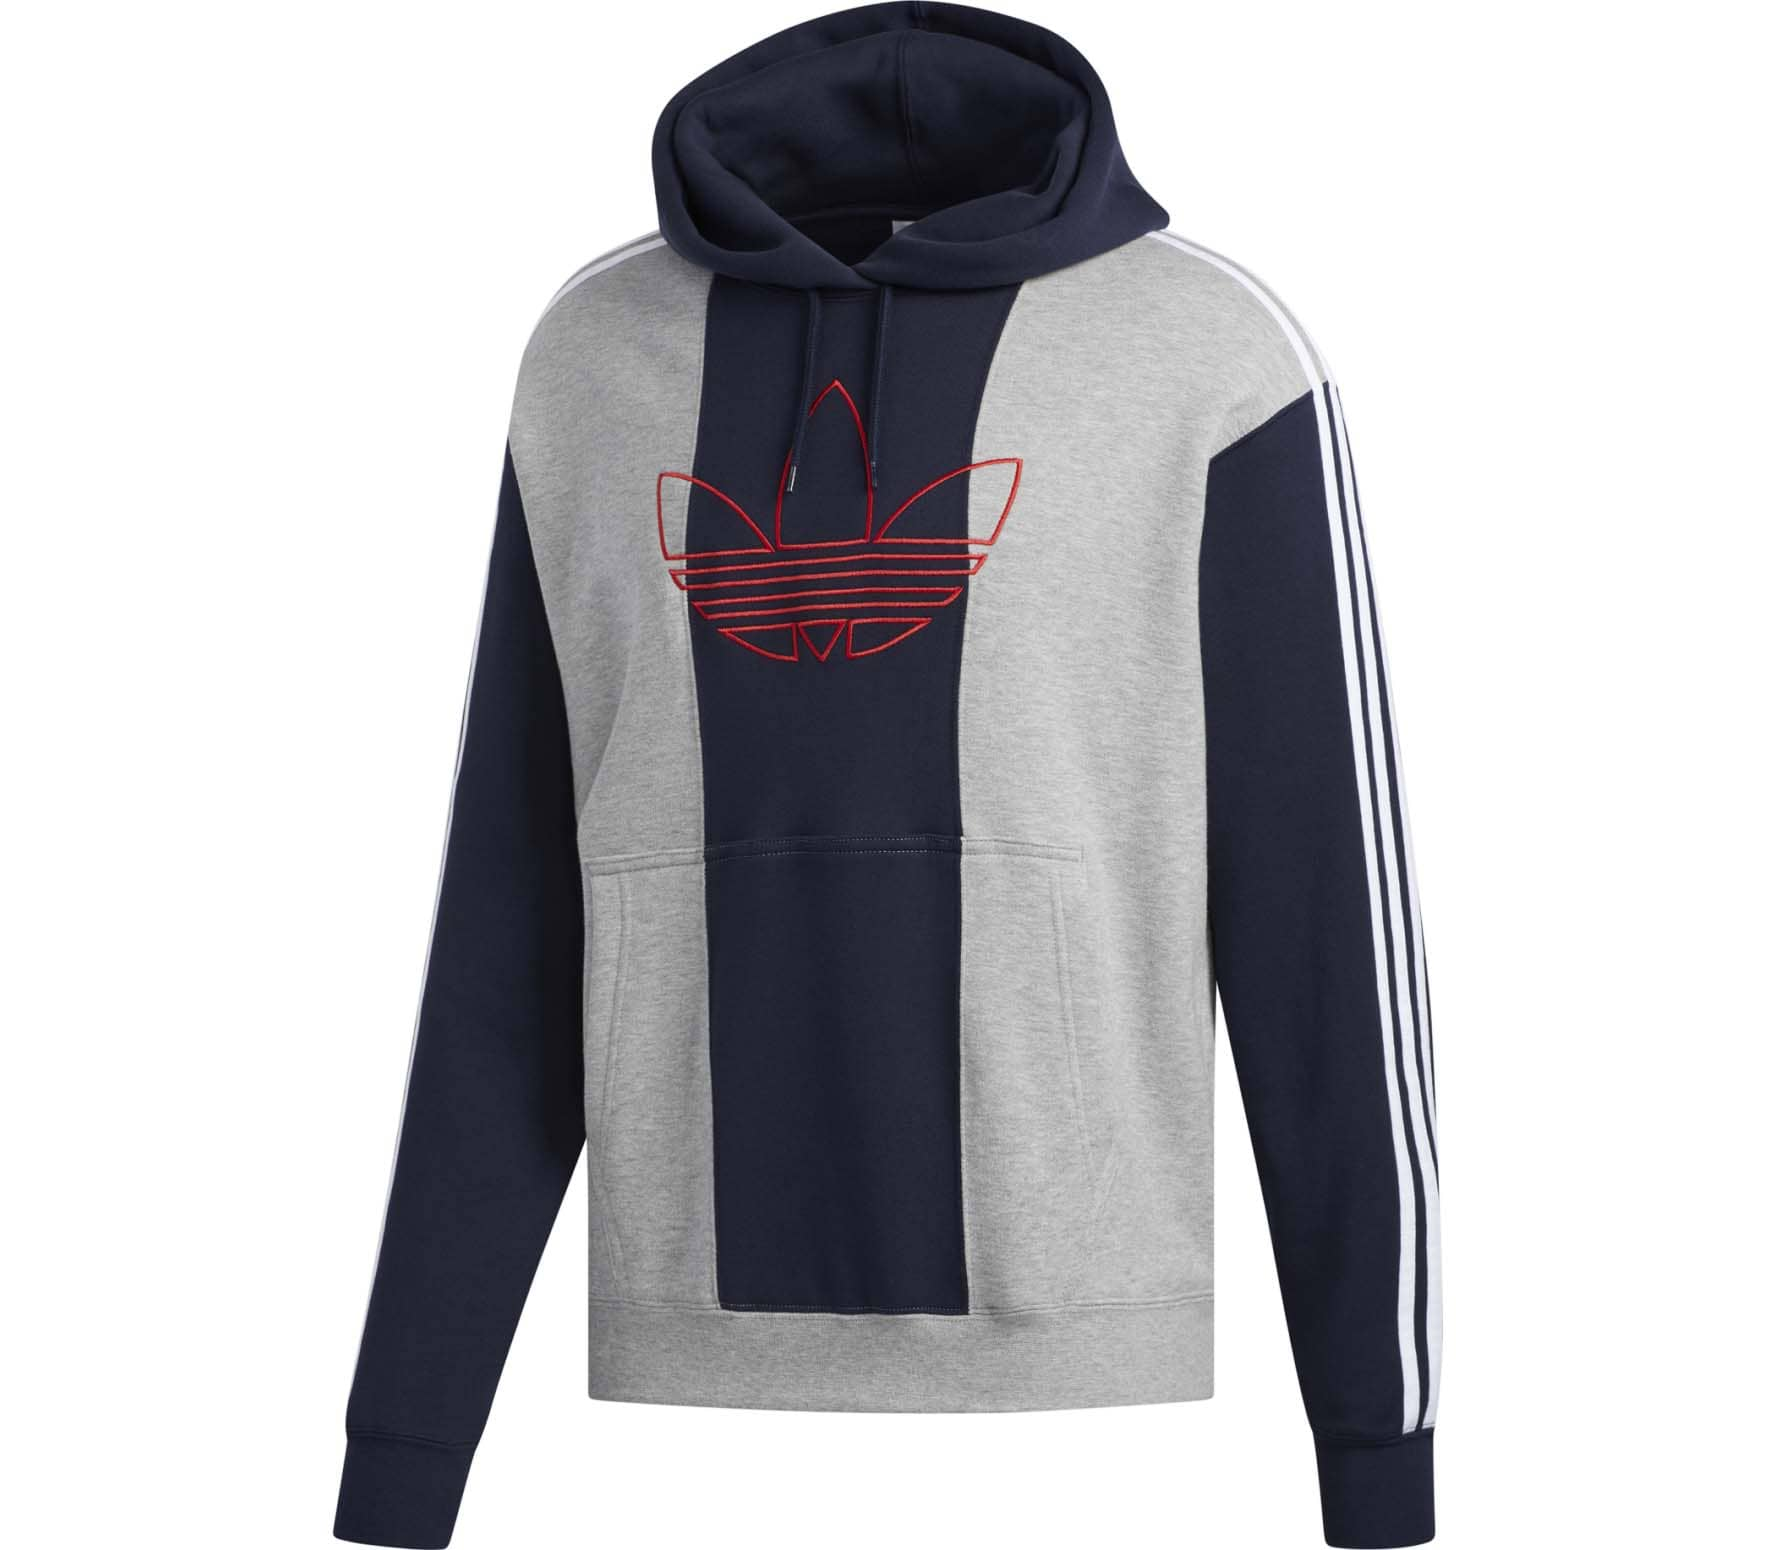 the latest 174e6 99162 adidas Originals Off Court Trefoil Herren Hoodie grau